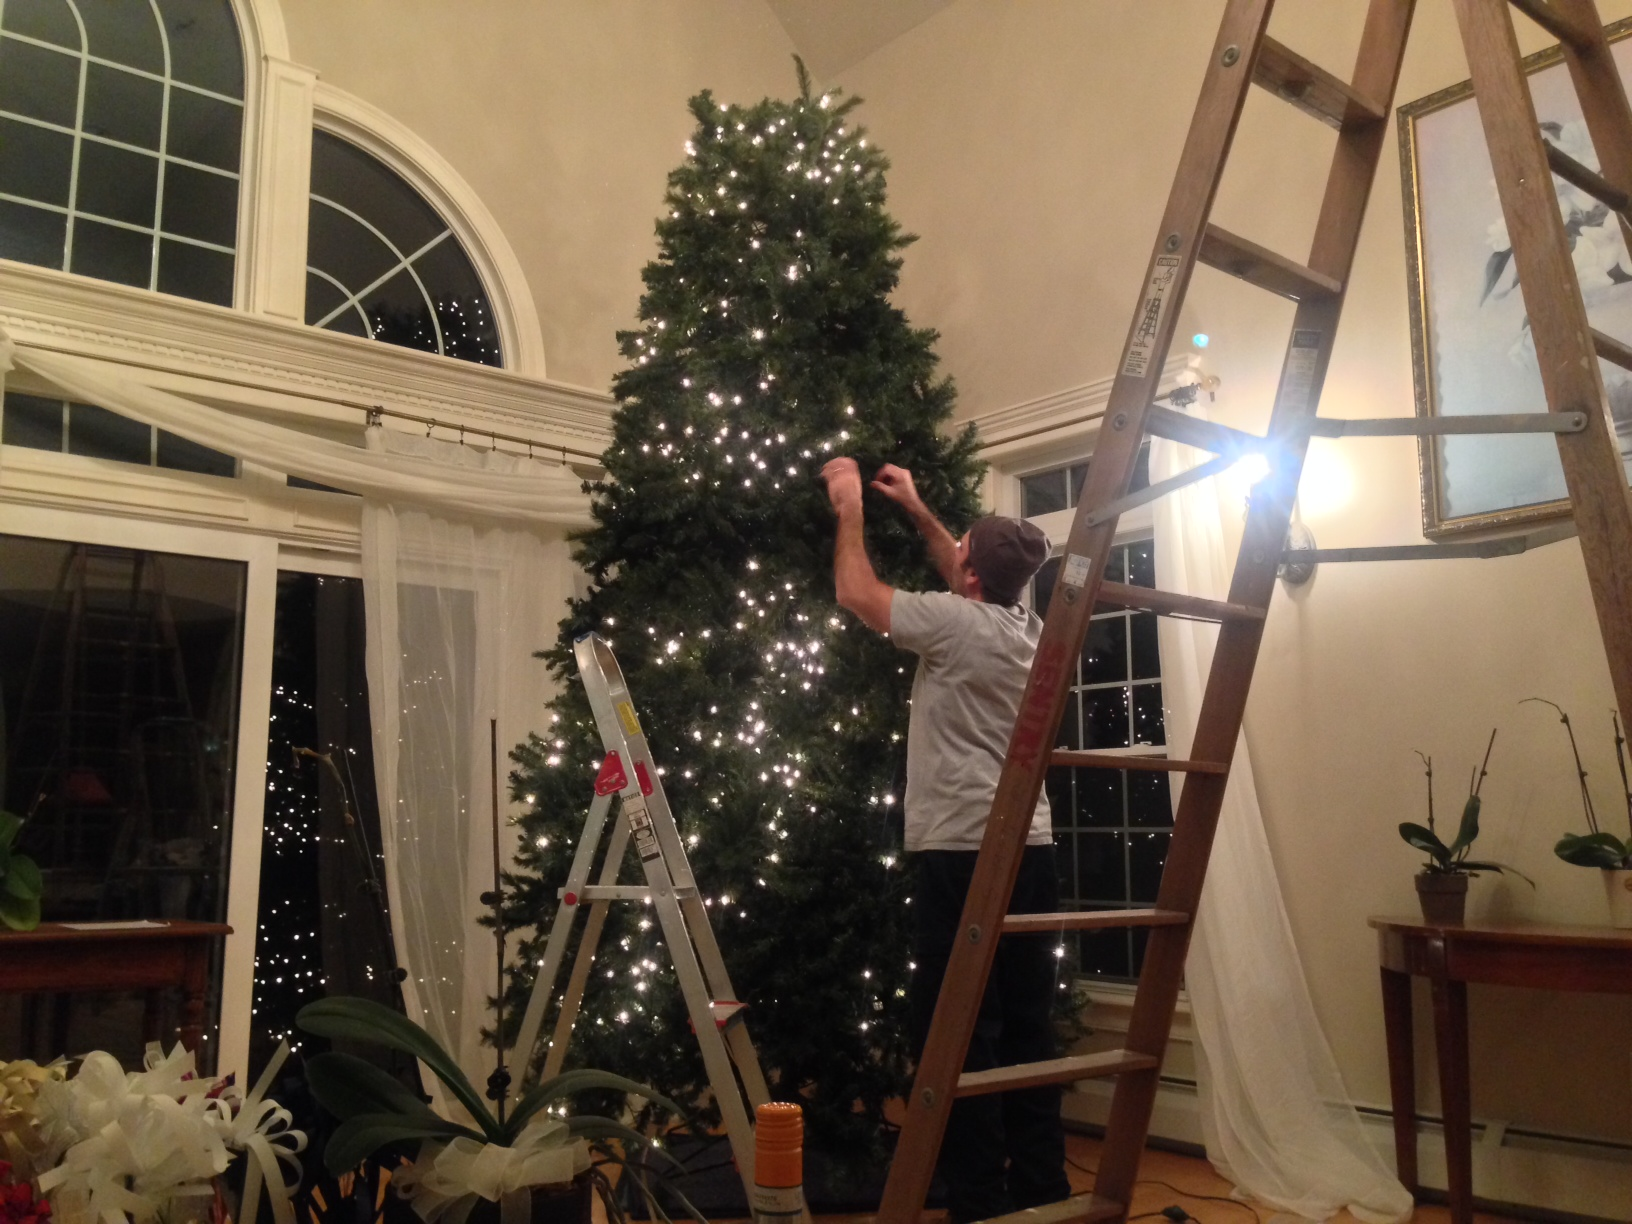 tree 1 st barry checking all 900 lights to find the problem - How To Fix Pre Lit Christmas Tree Lights